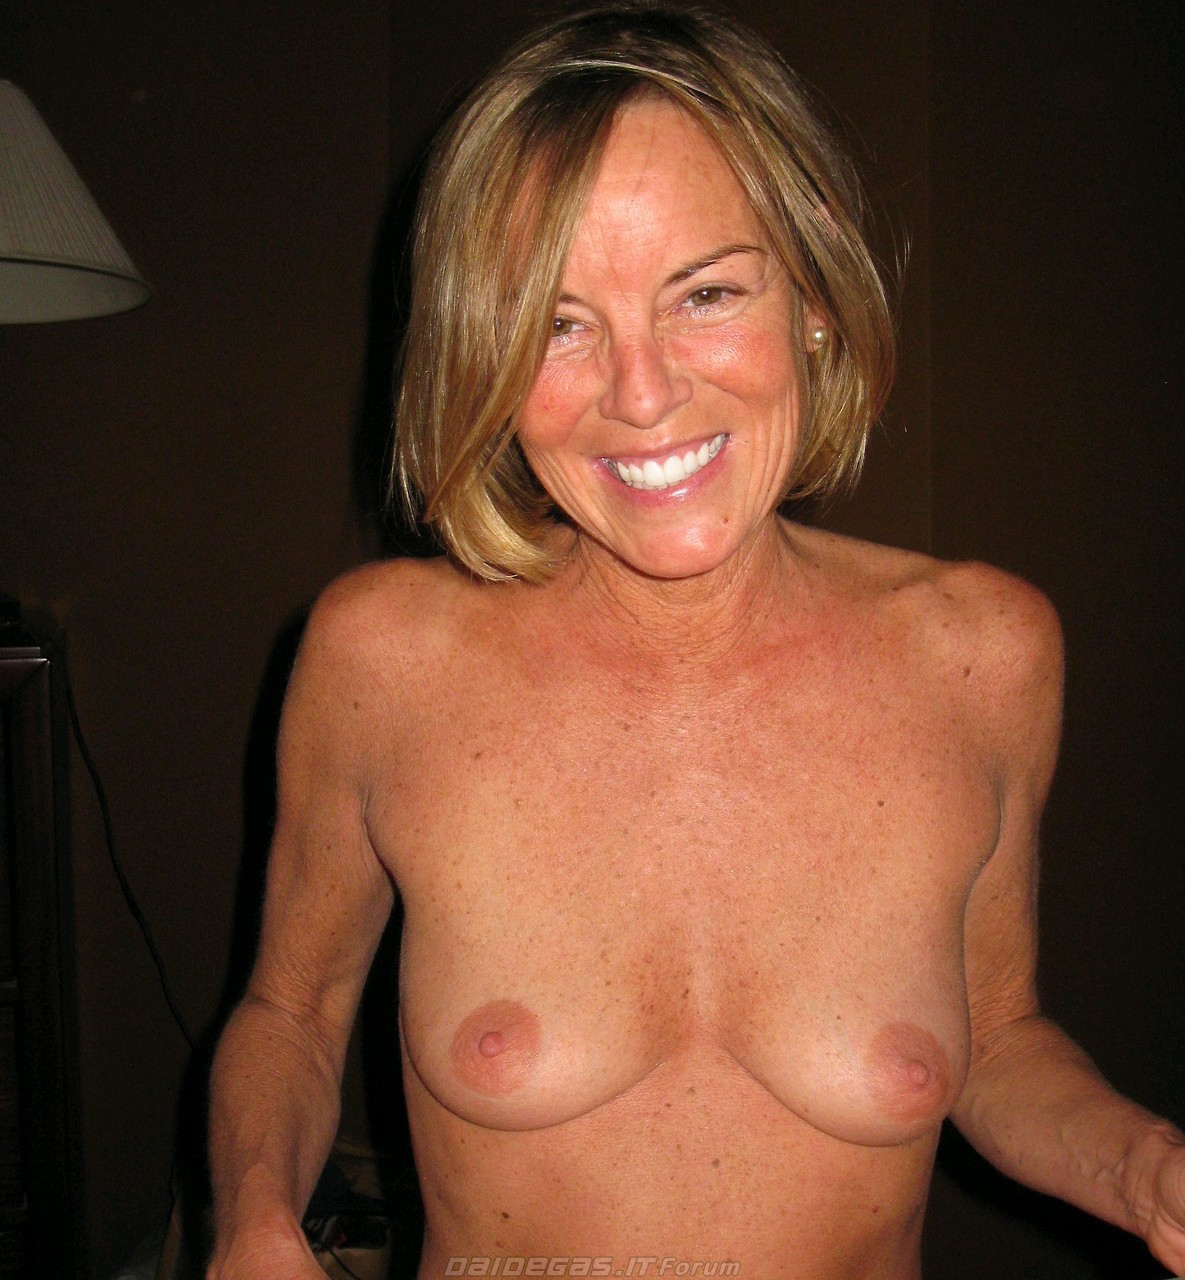 hot nude women with huge tits and nice pussys